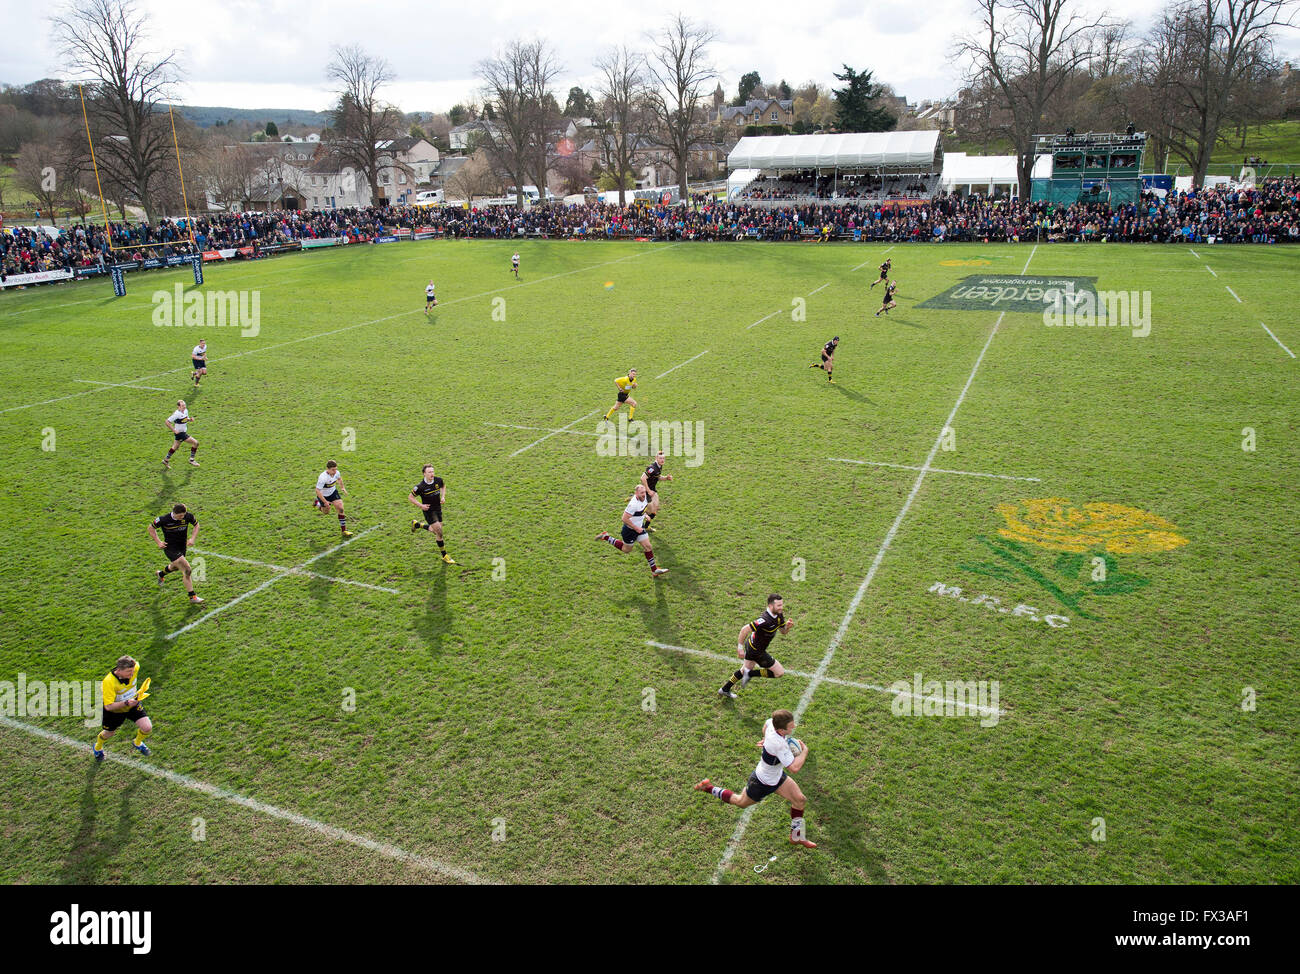 09/04/2016, The Melrose seven-a-side rugby union, football, tournament, the Greenyards, Melrose, Scotland. - Stock Image